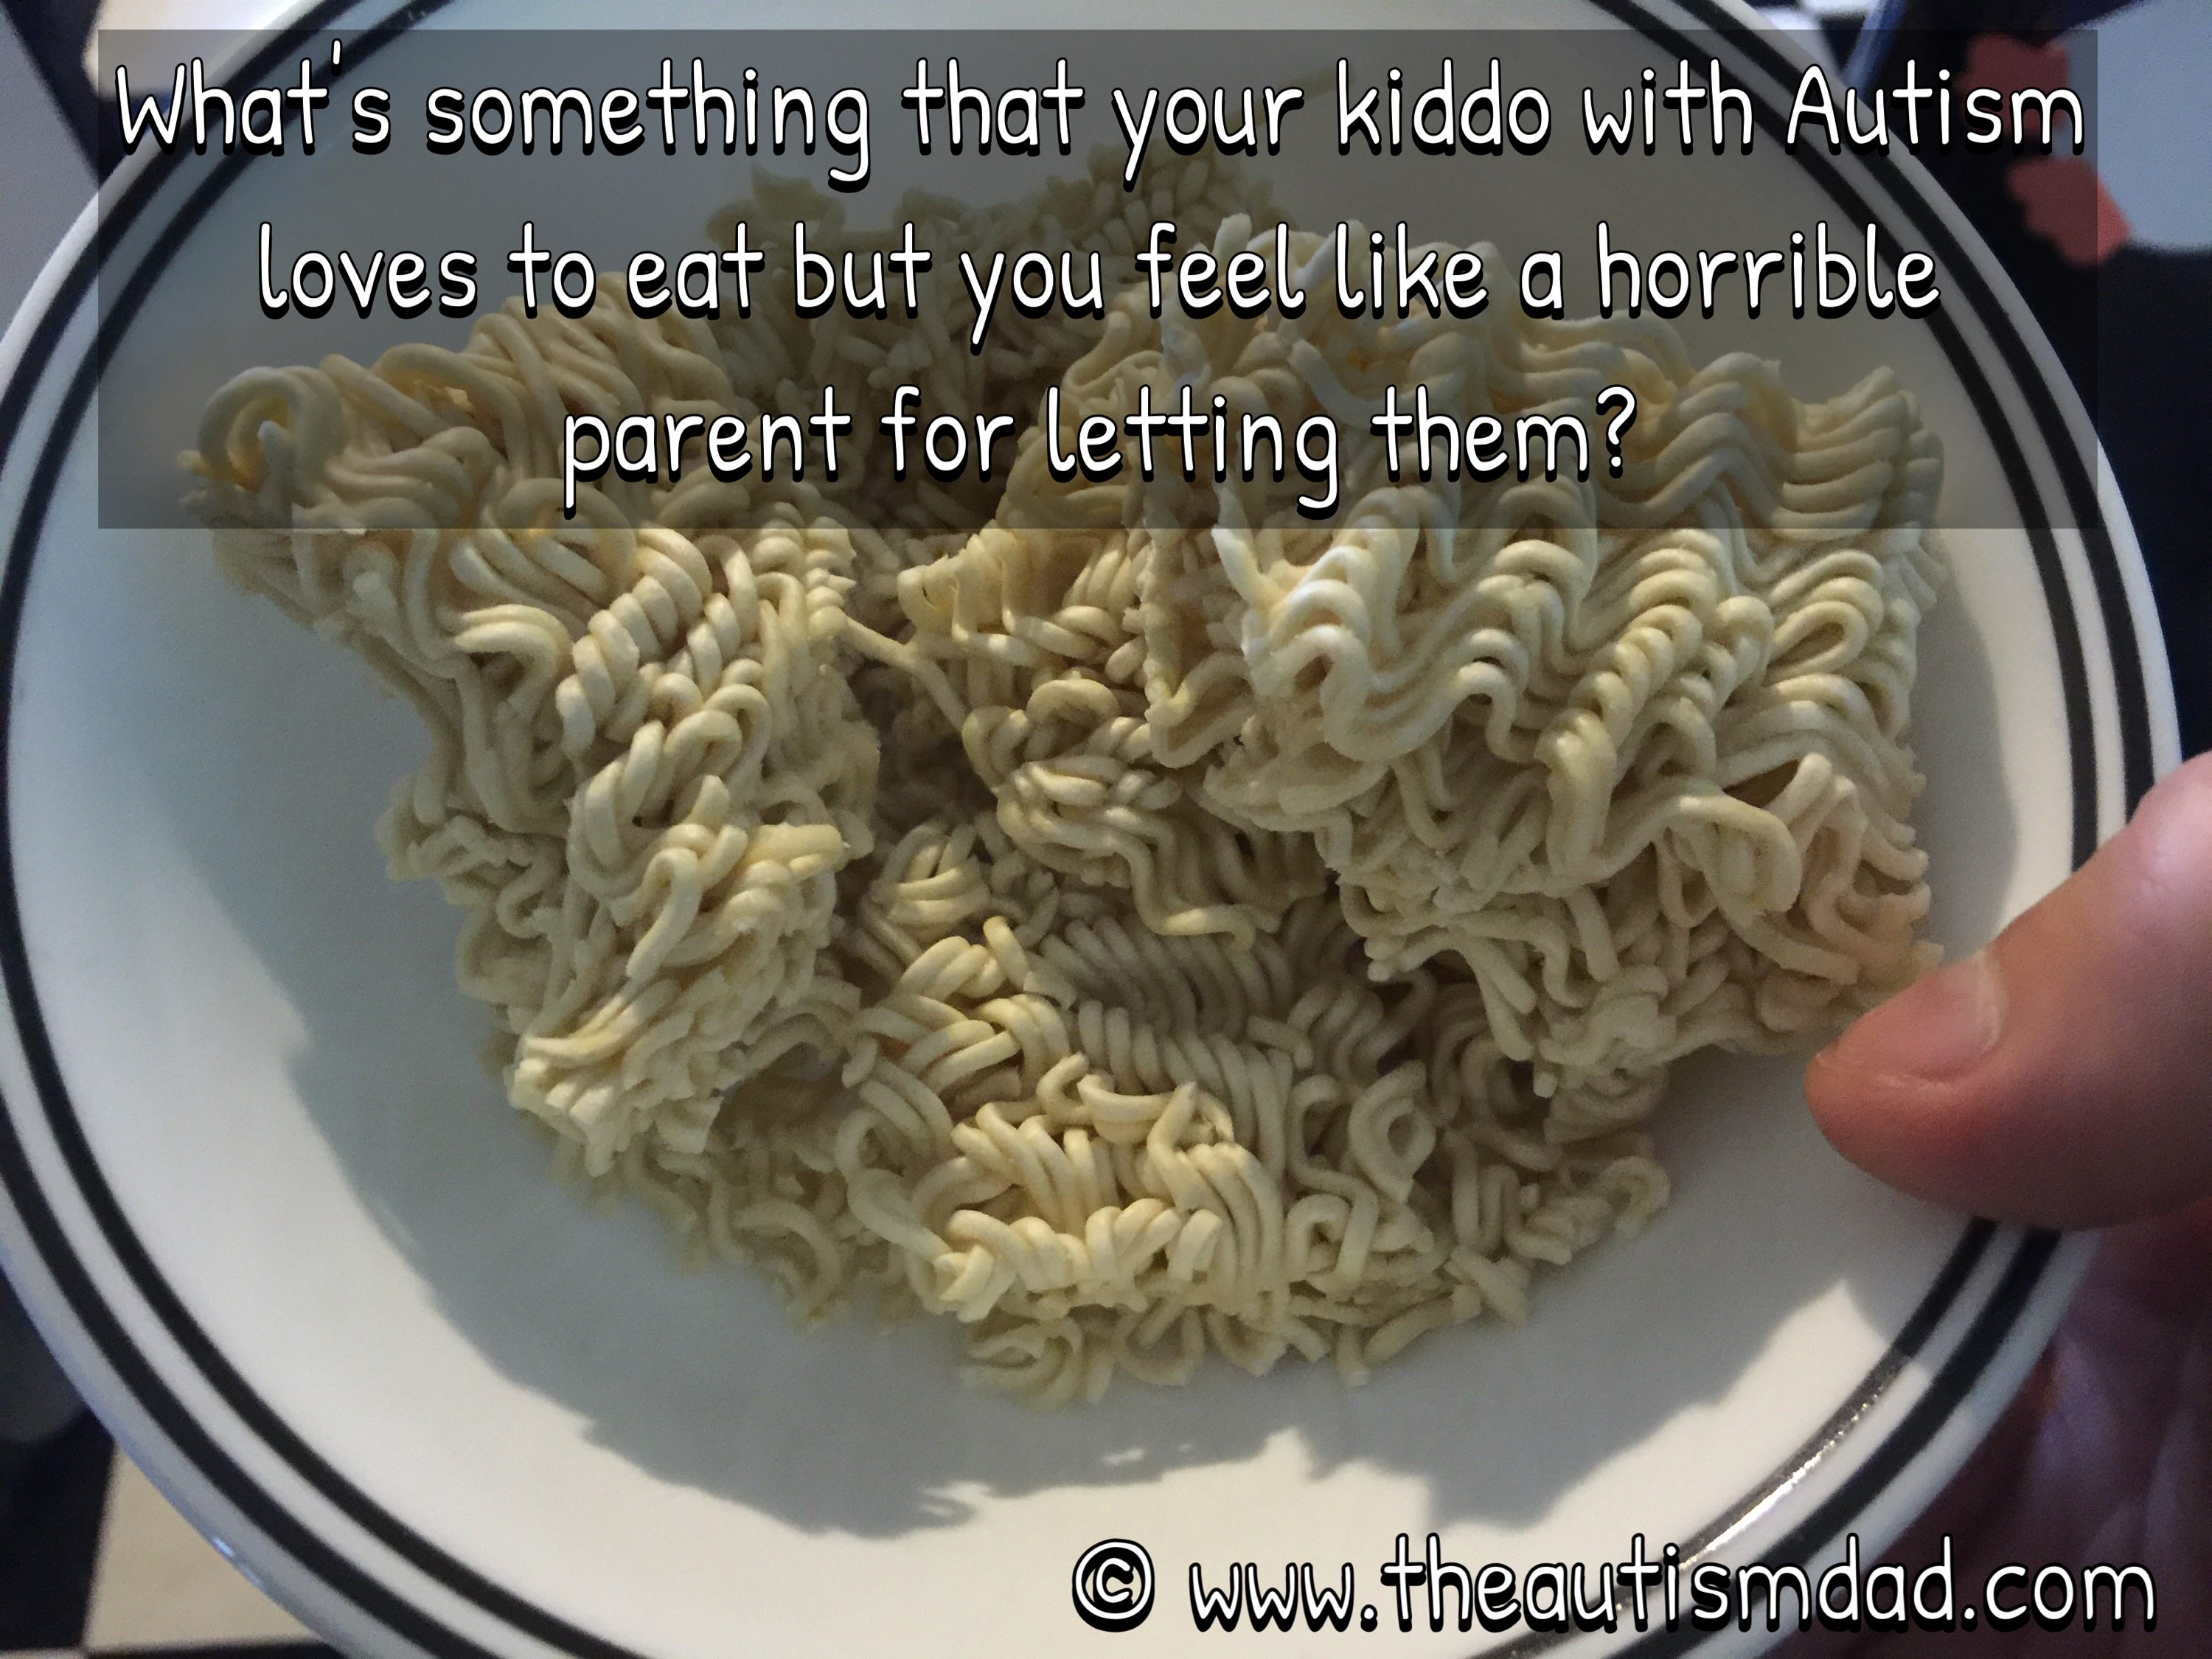 What's something that your kiddo with #Autism loves to eat but you feel like a horrible parent for letting them?